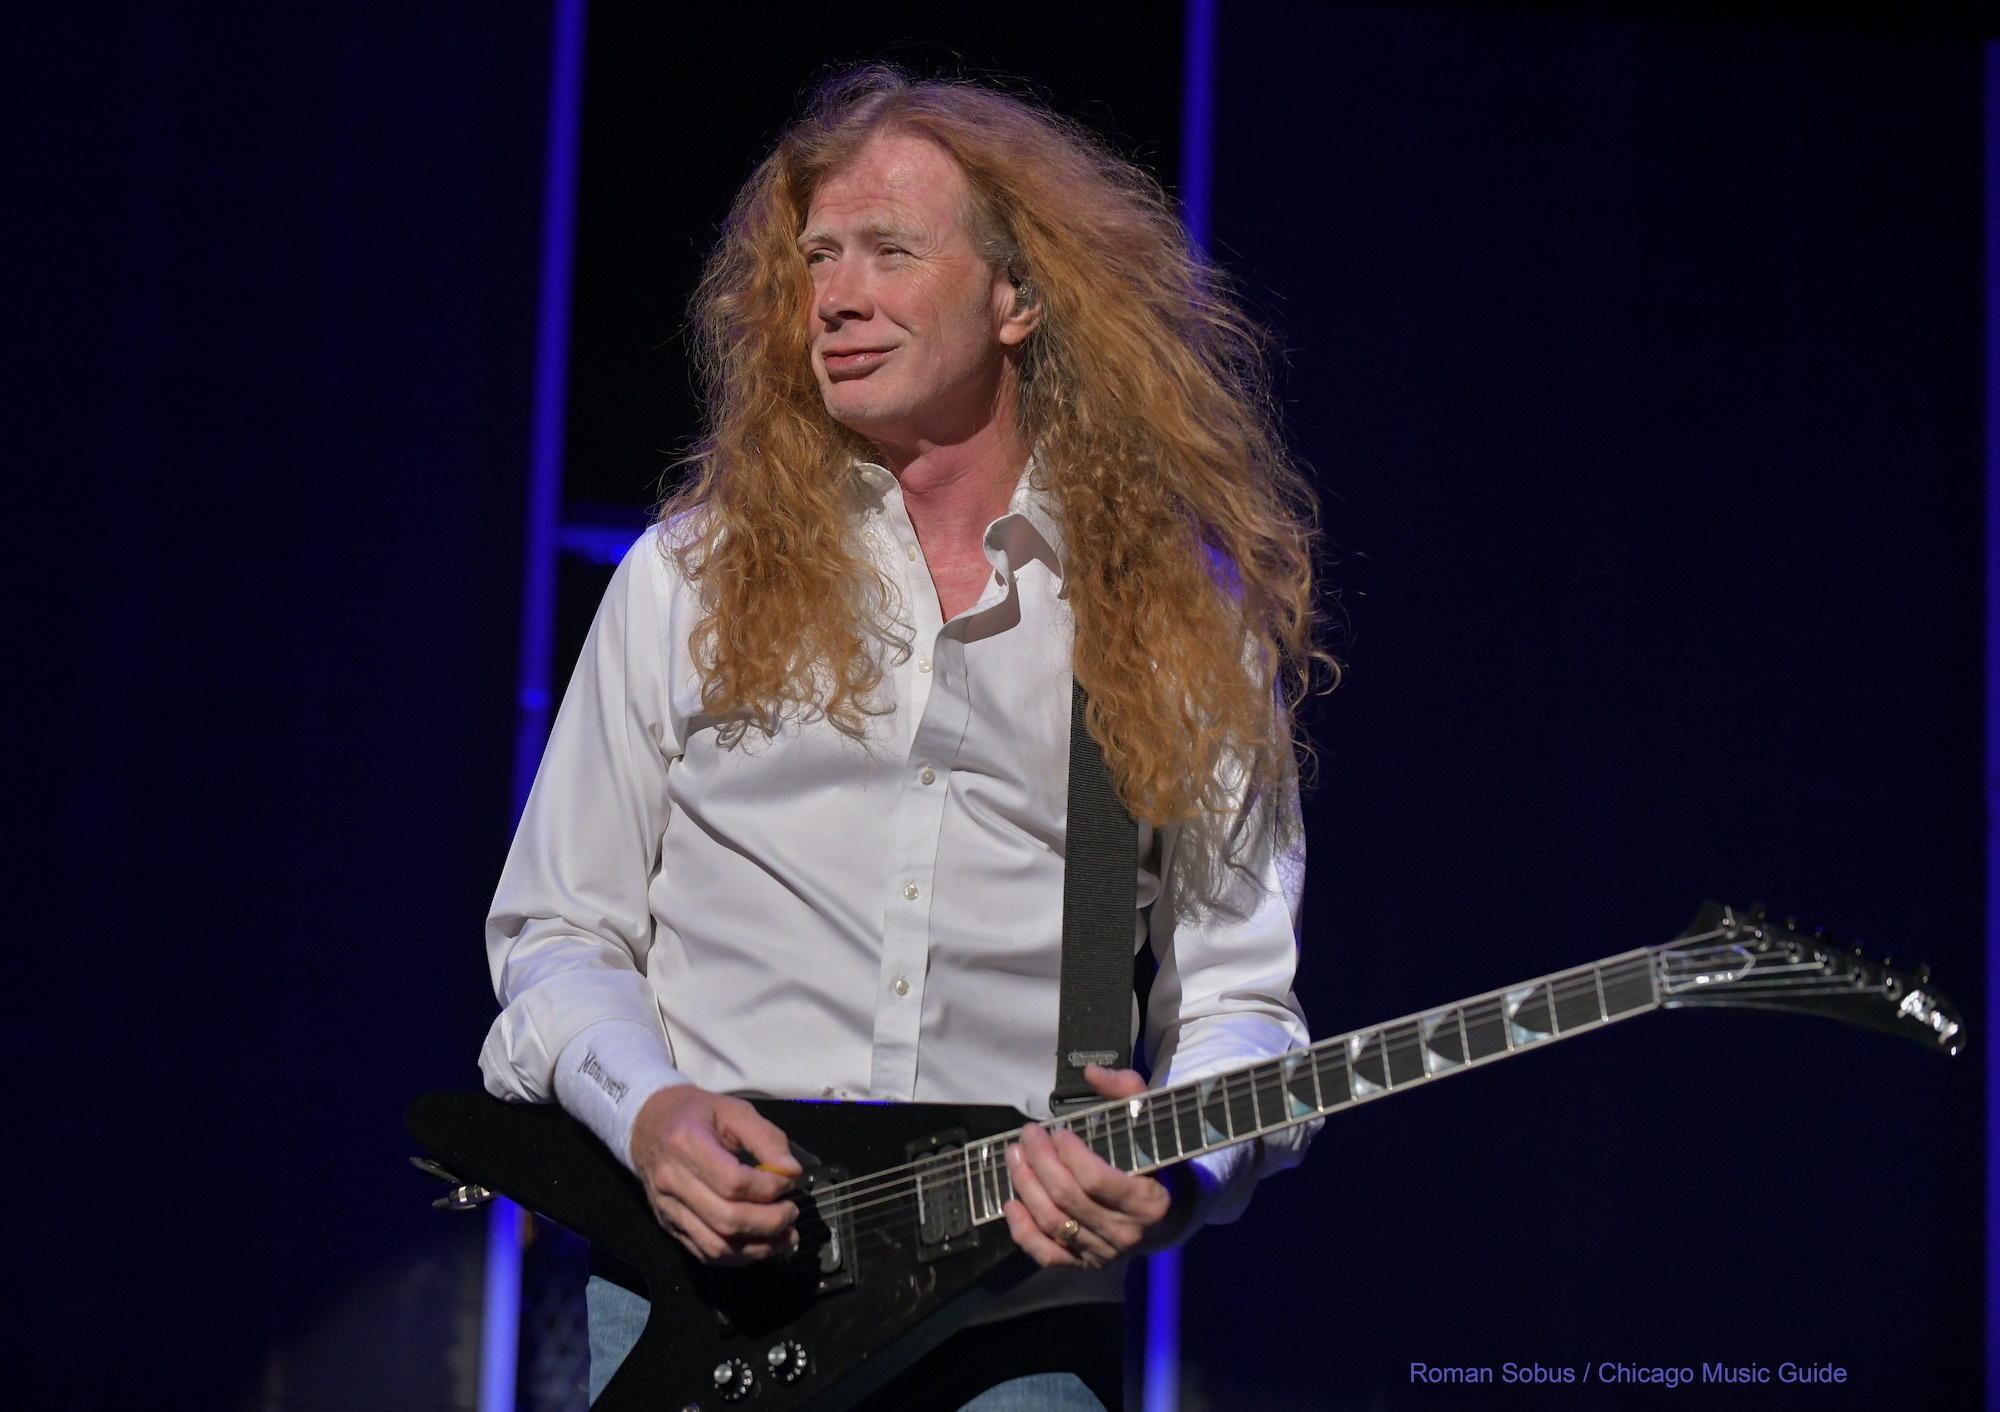 Megadeth Live at Hollywood Casino Amphitheatre [GALLERY] 11